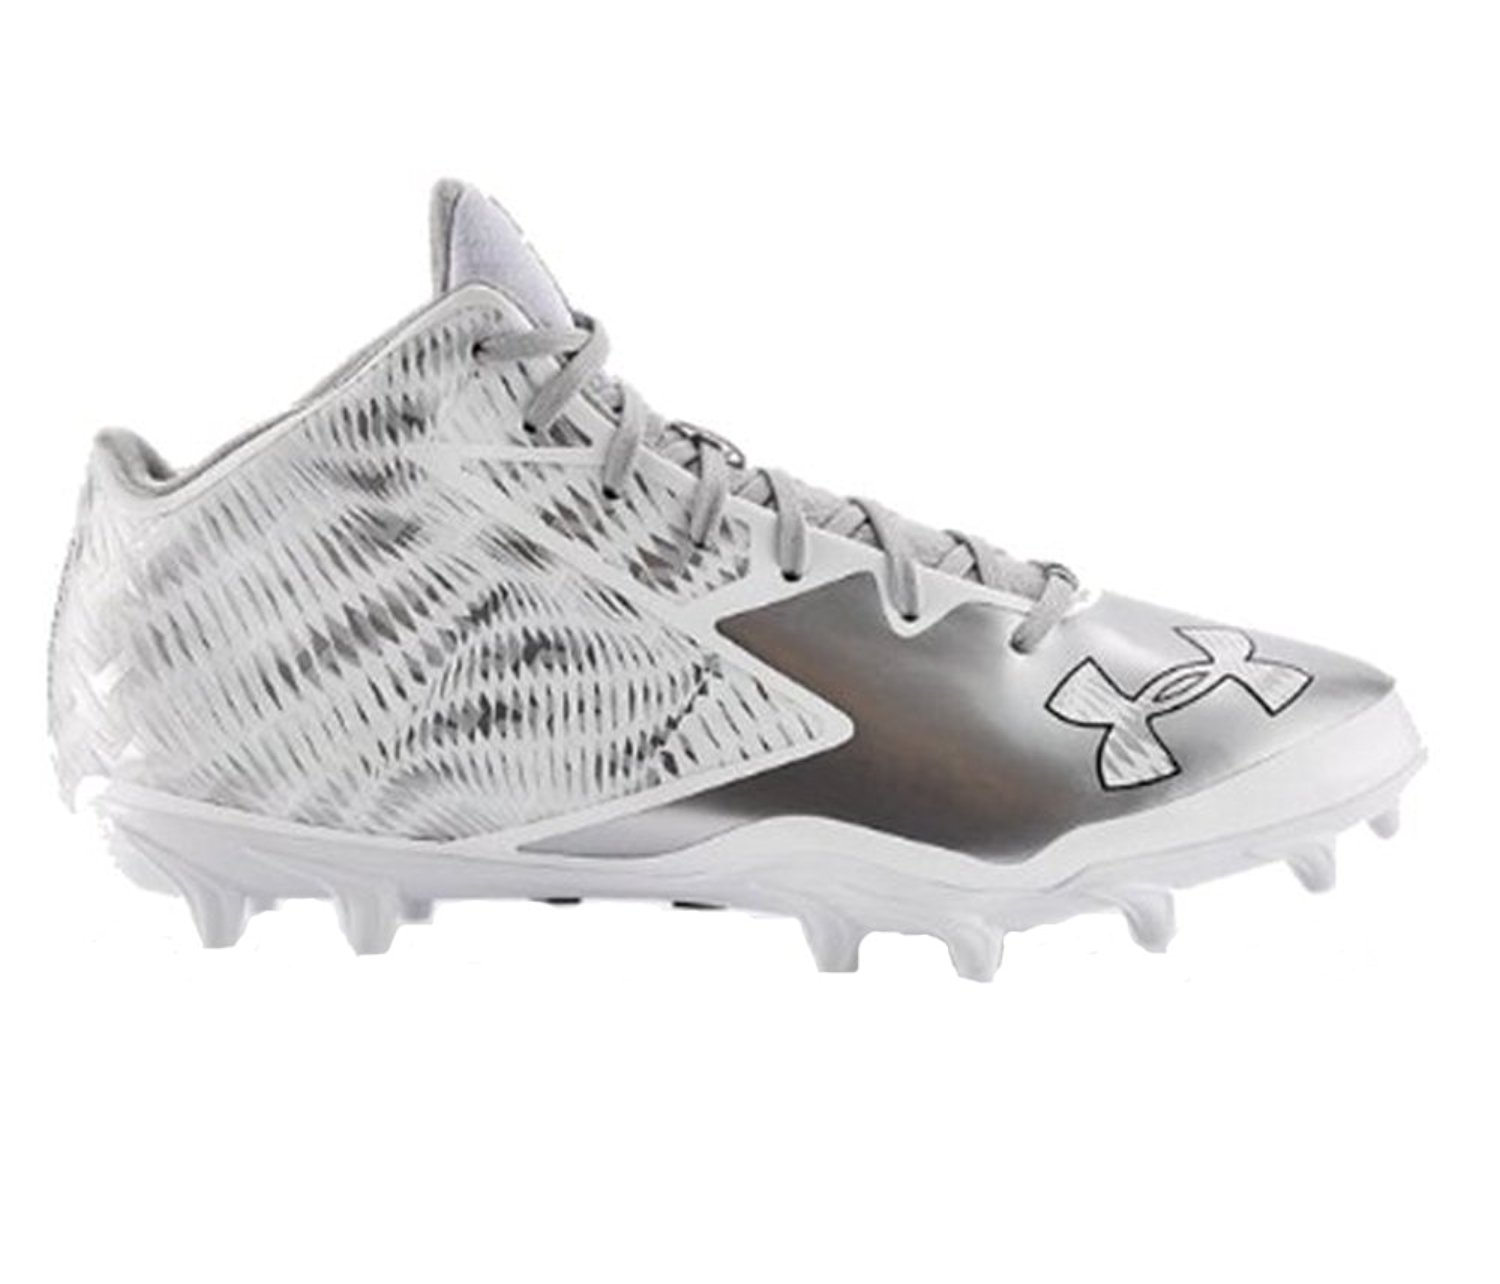 a3455a4516f Buy Under Armour UA Nitro Mid D Mens Football Cleats in Cheap Price ...